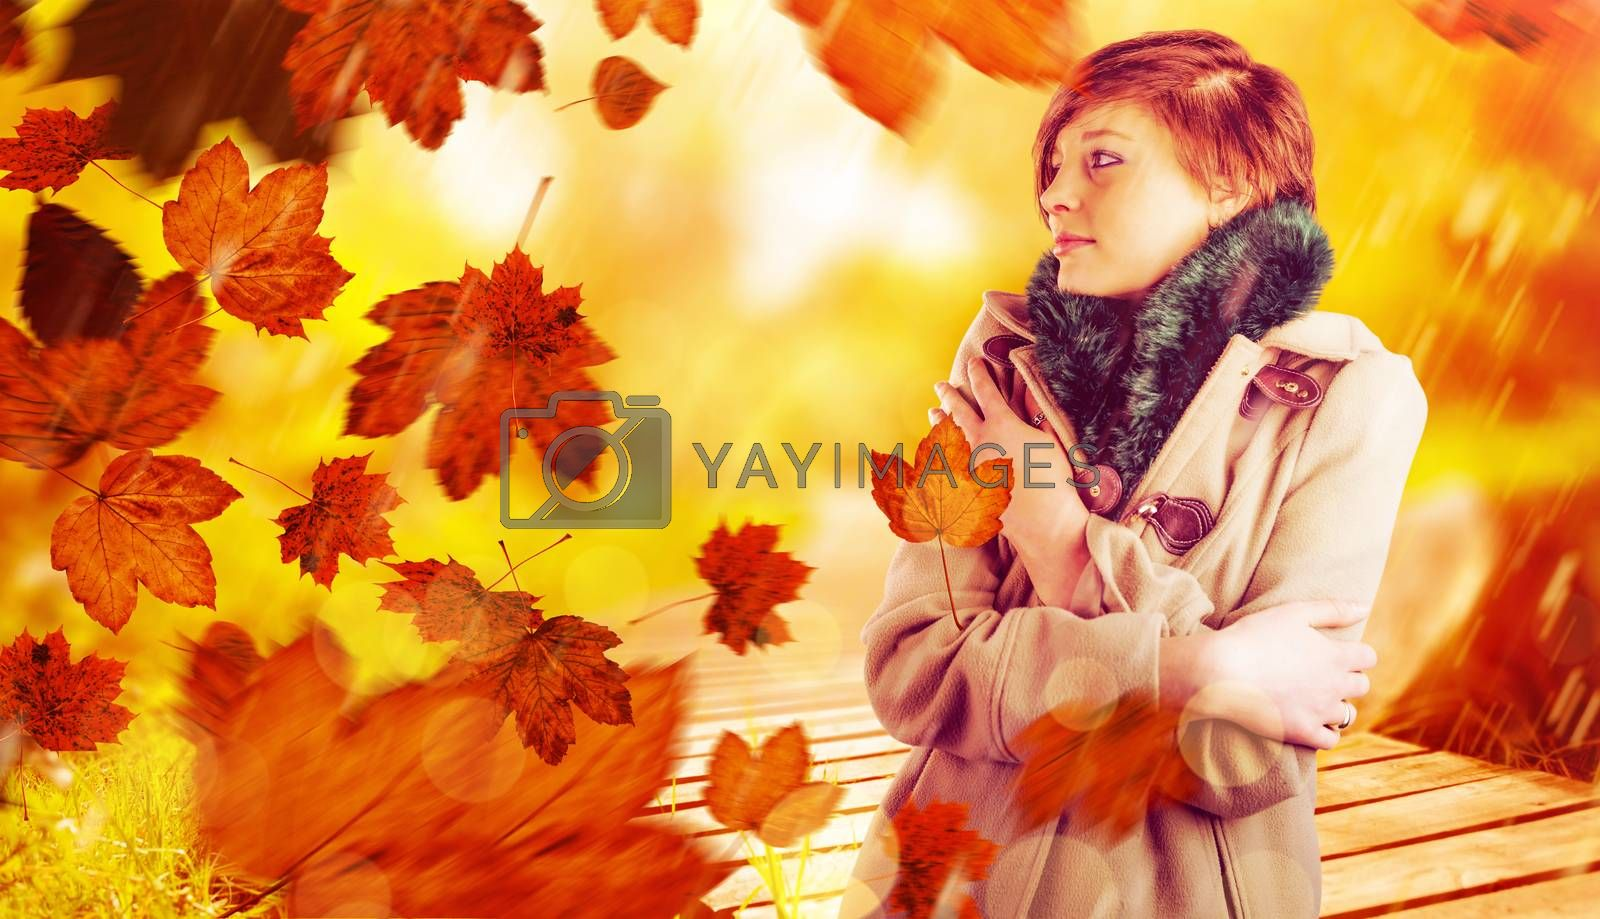 Composite image of thoughtful woman in winter coat by Wavebreakmedia